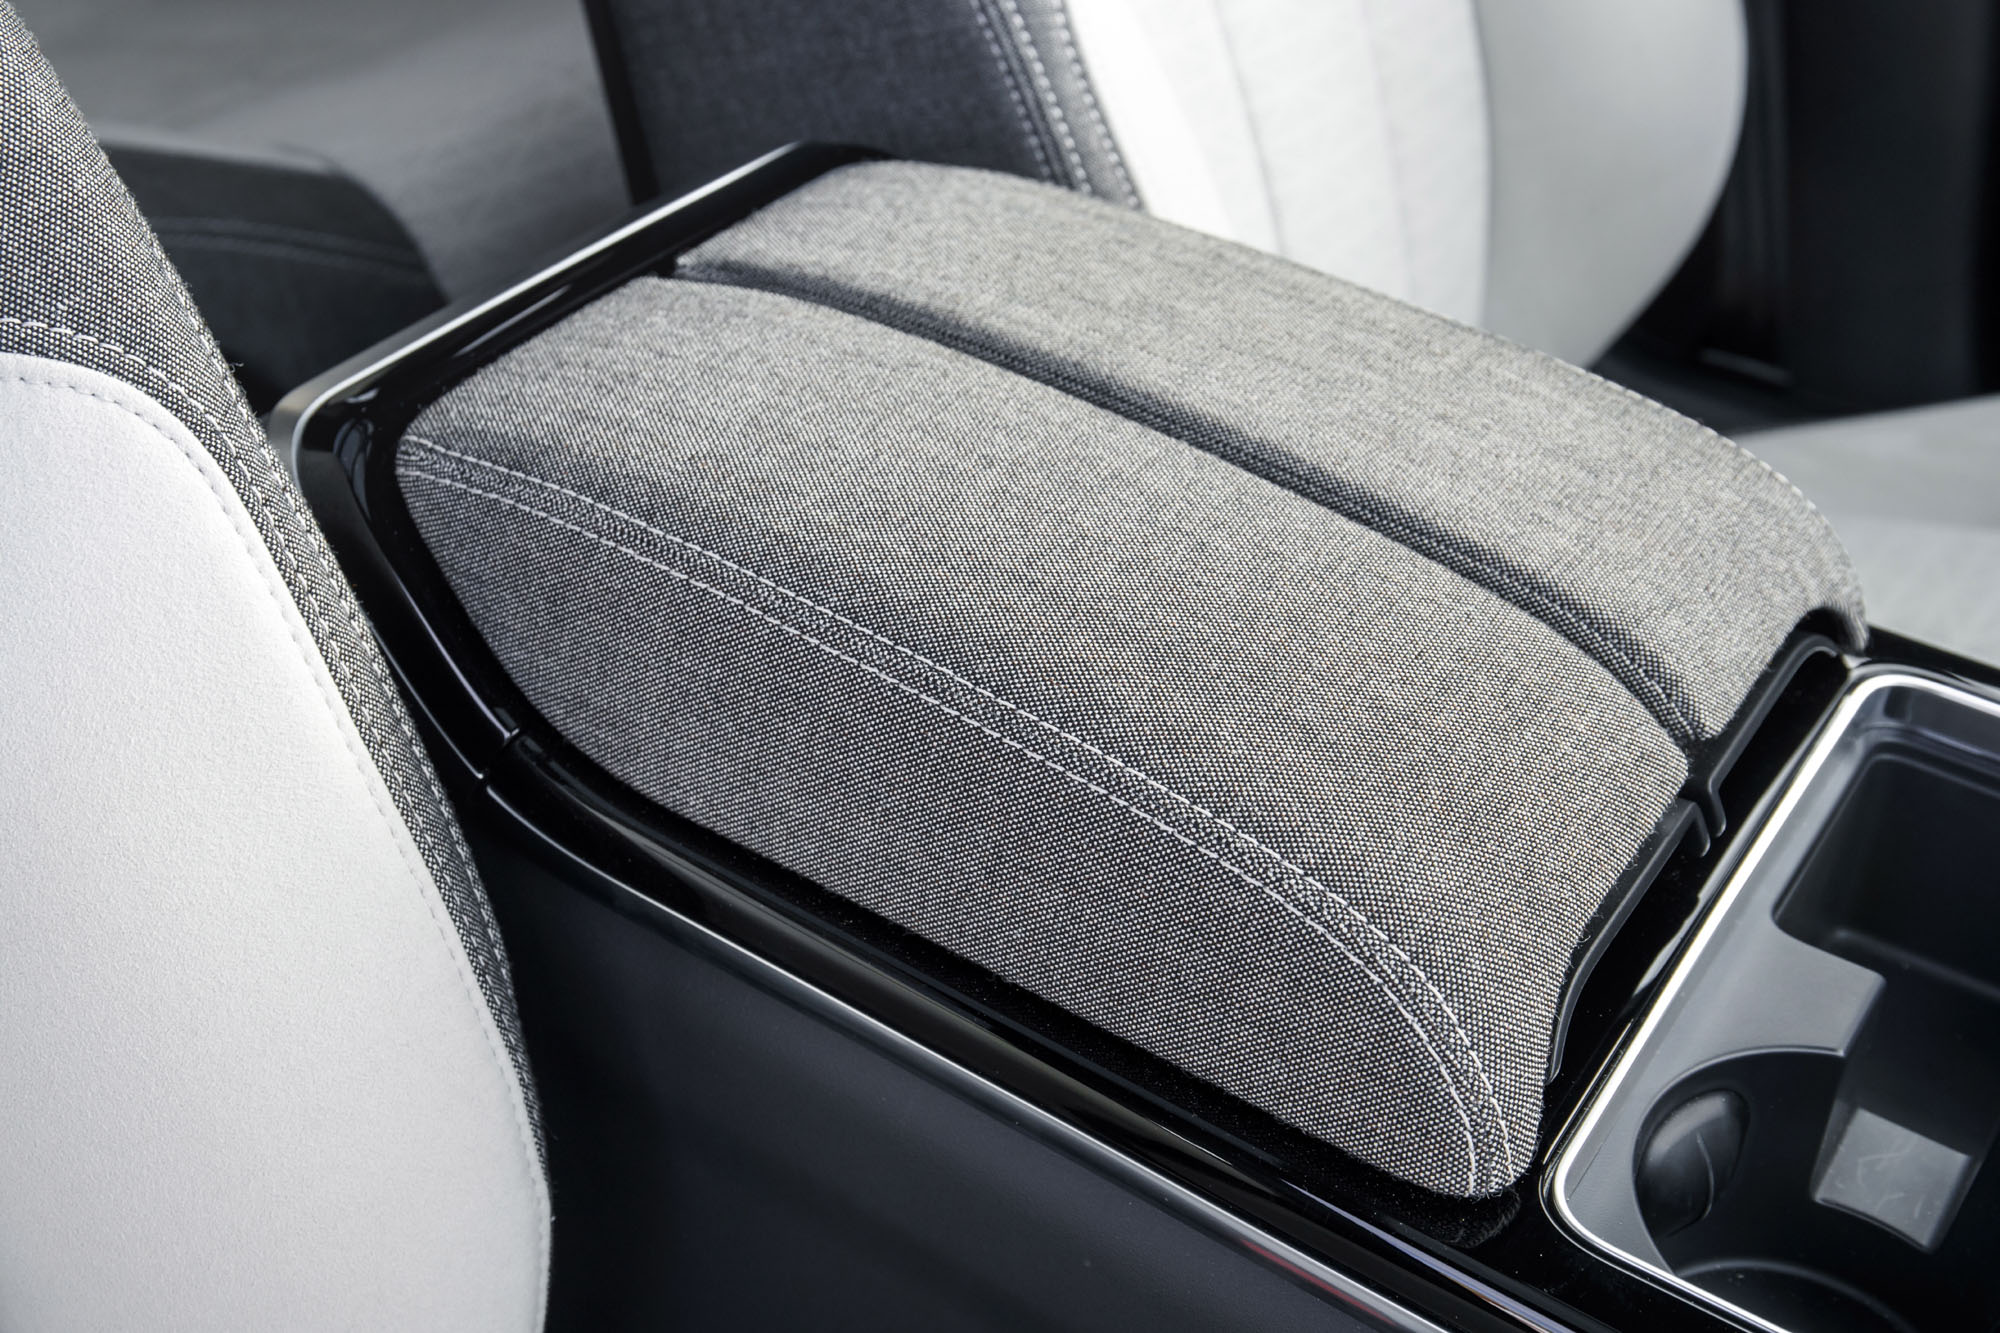 relates to The Seats in Your Next Luxury Car May Be Made From Soybeans and Eucalyptus